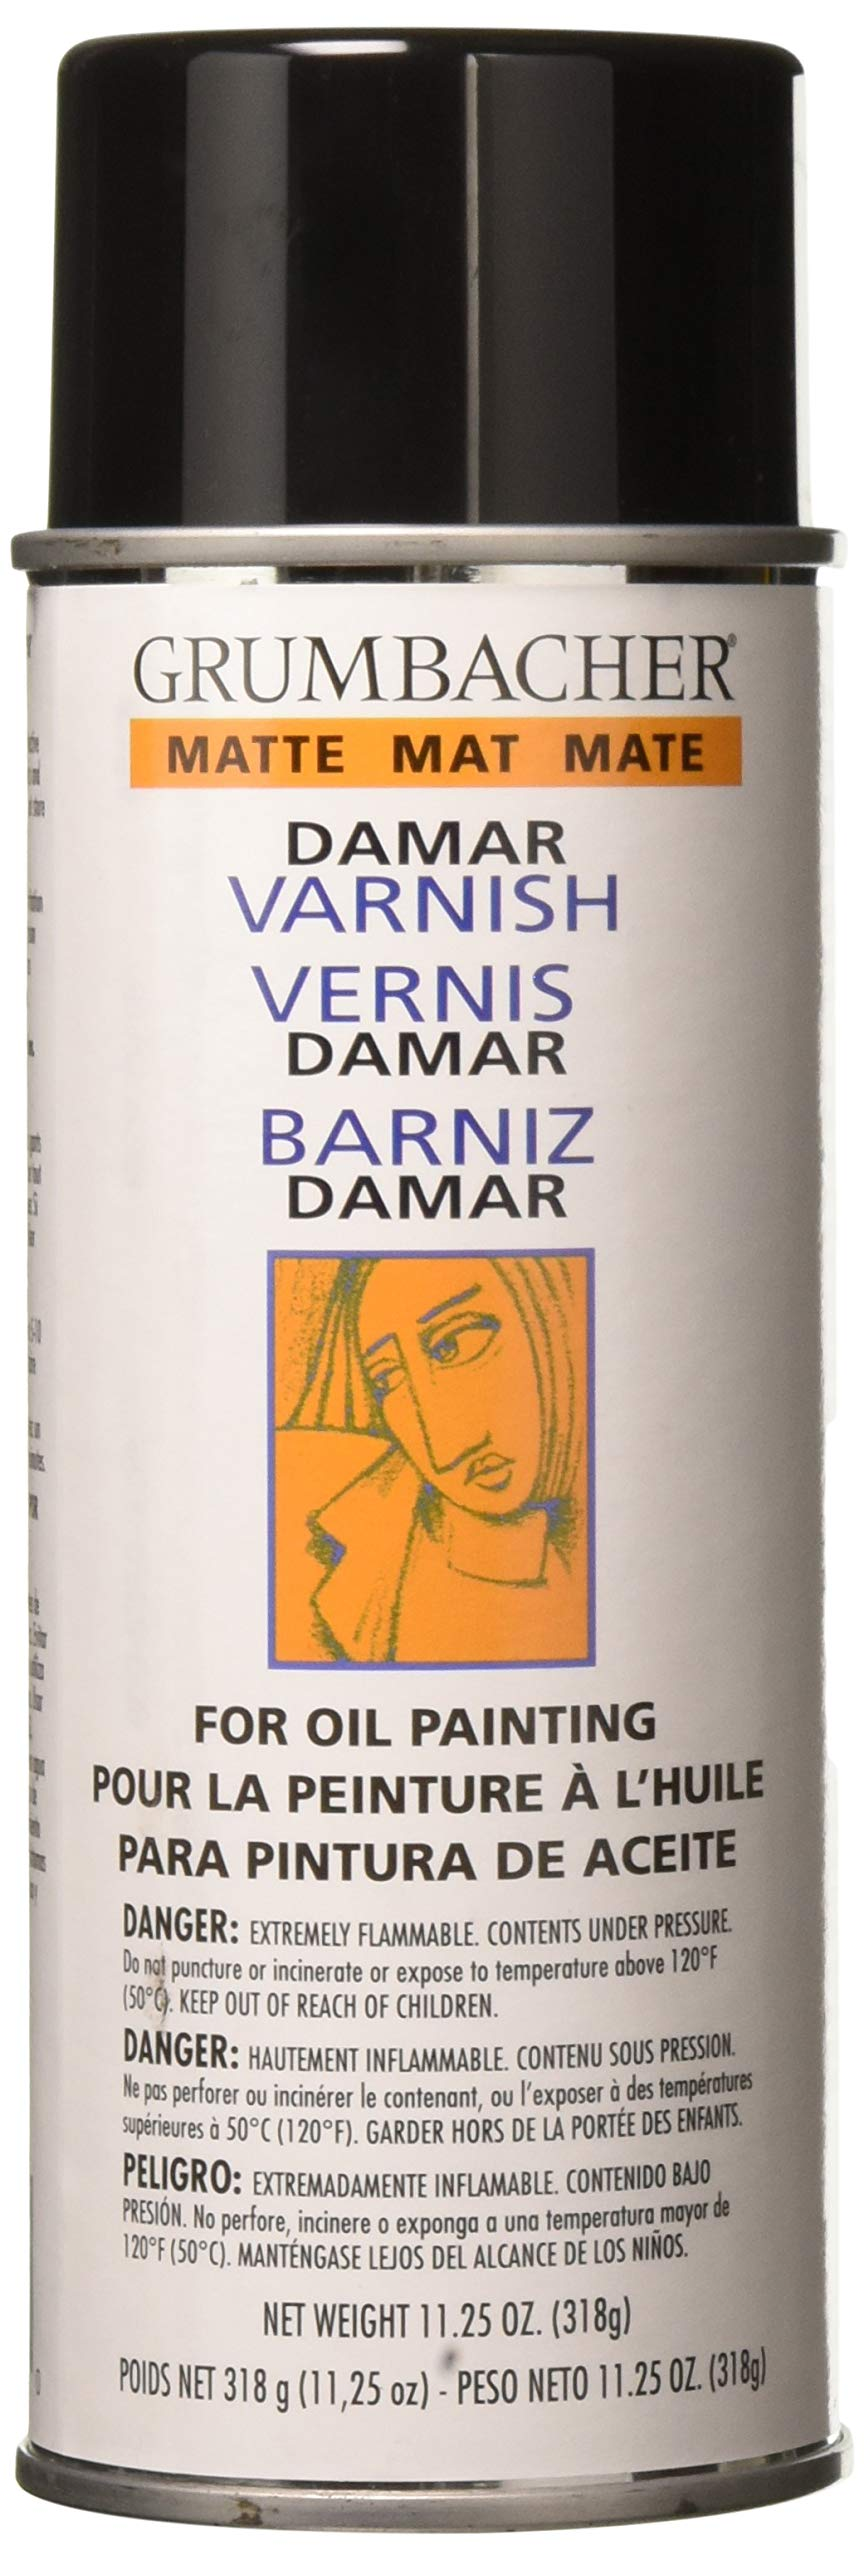 Grumbacher Damar Matte Varnish Spray For Oil Painting, 11.25 oz Can